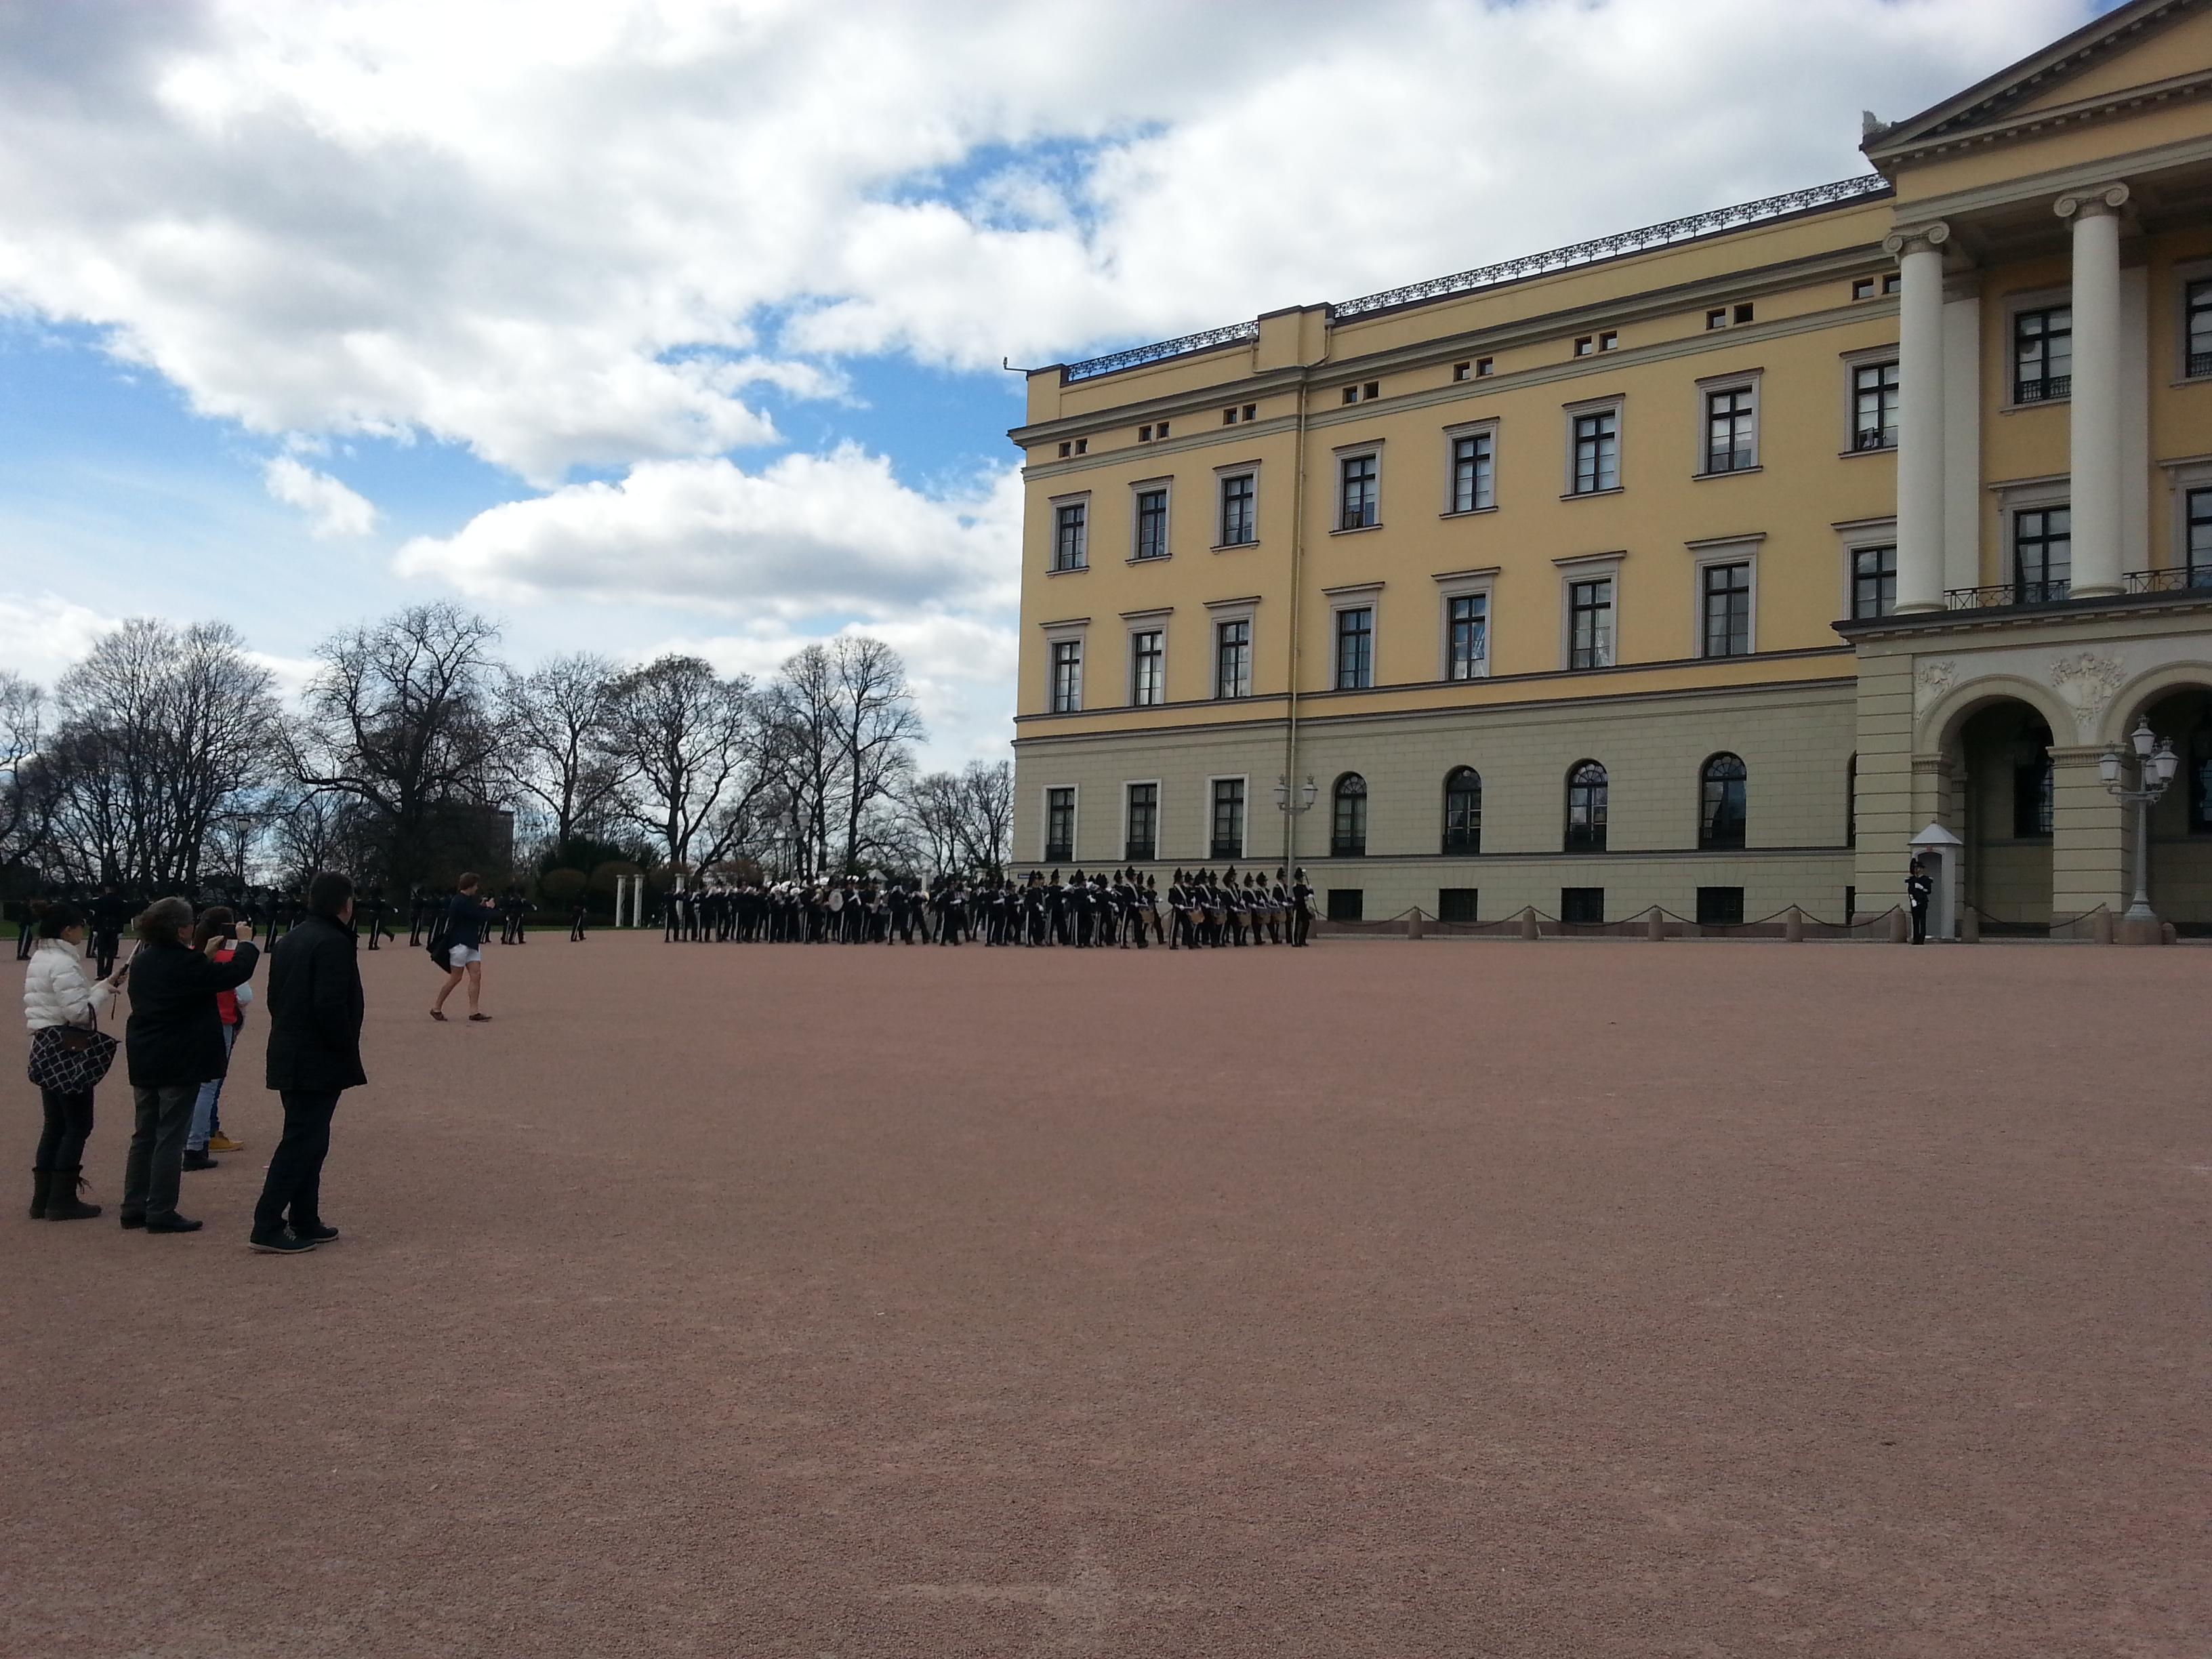 Norway's Royal Palace Guard Exchange - Oslo